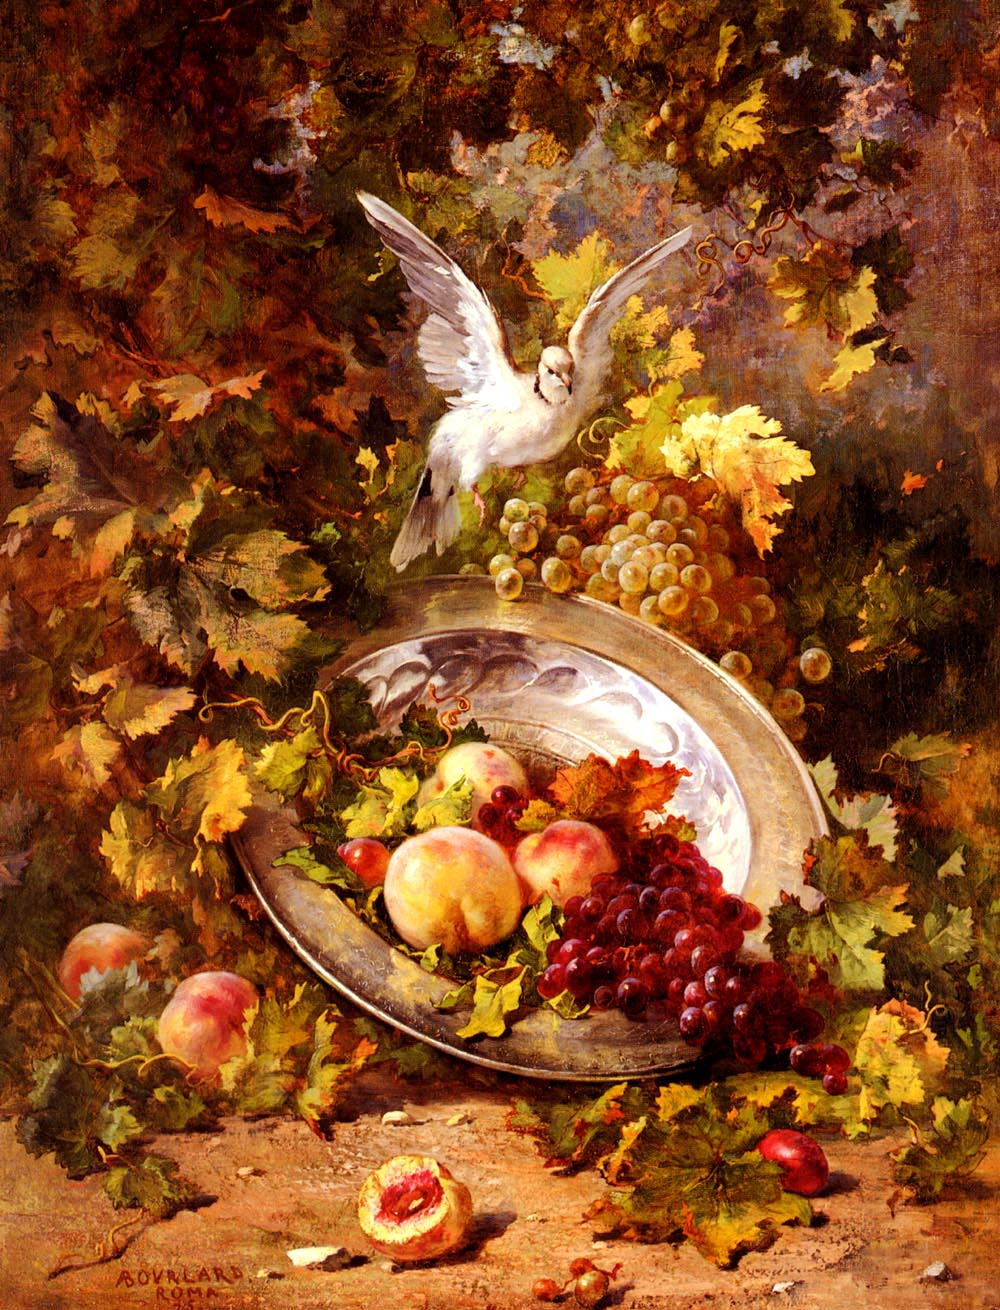 Peaches And Grapes With A Dove | Antoine Bourland | Oil Painting